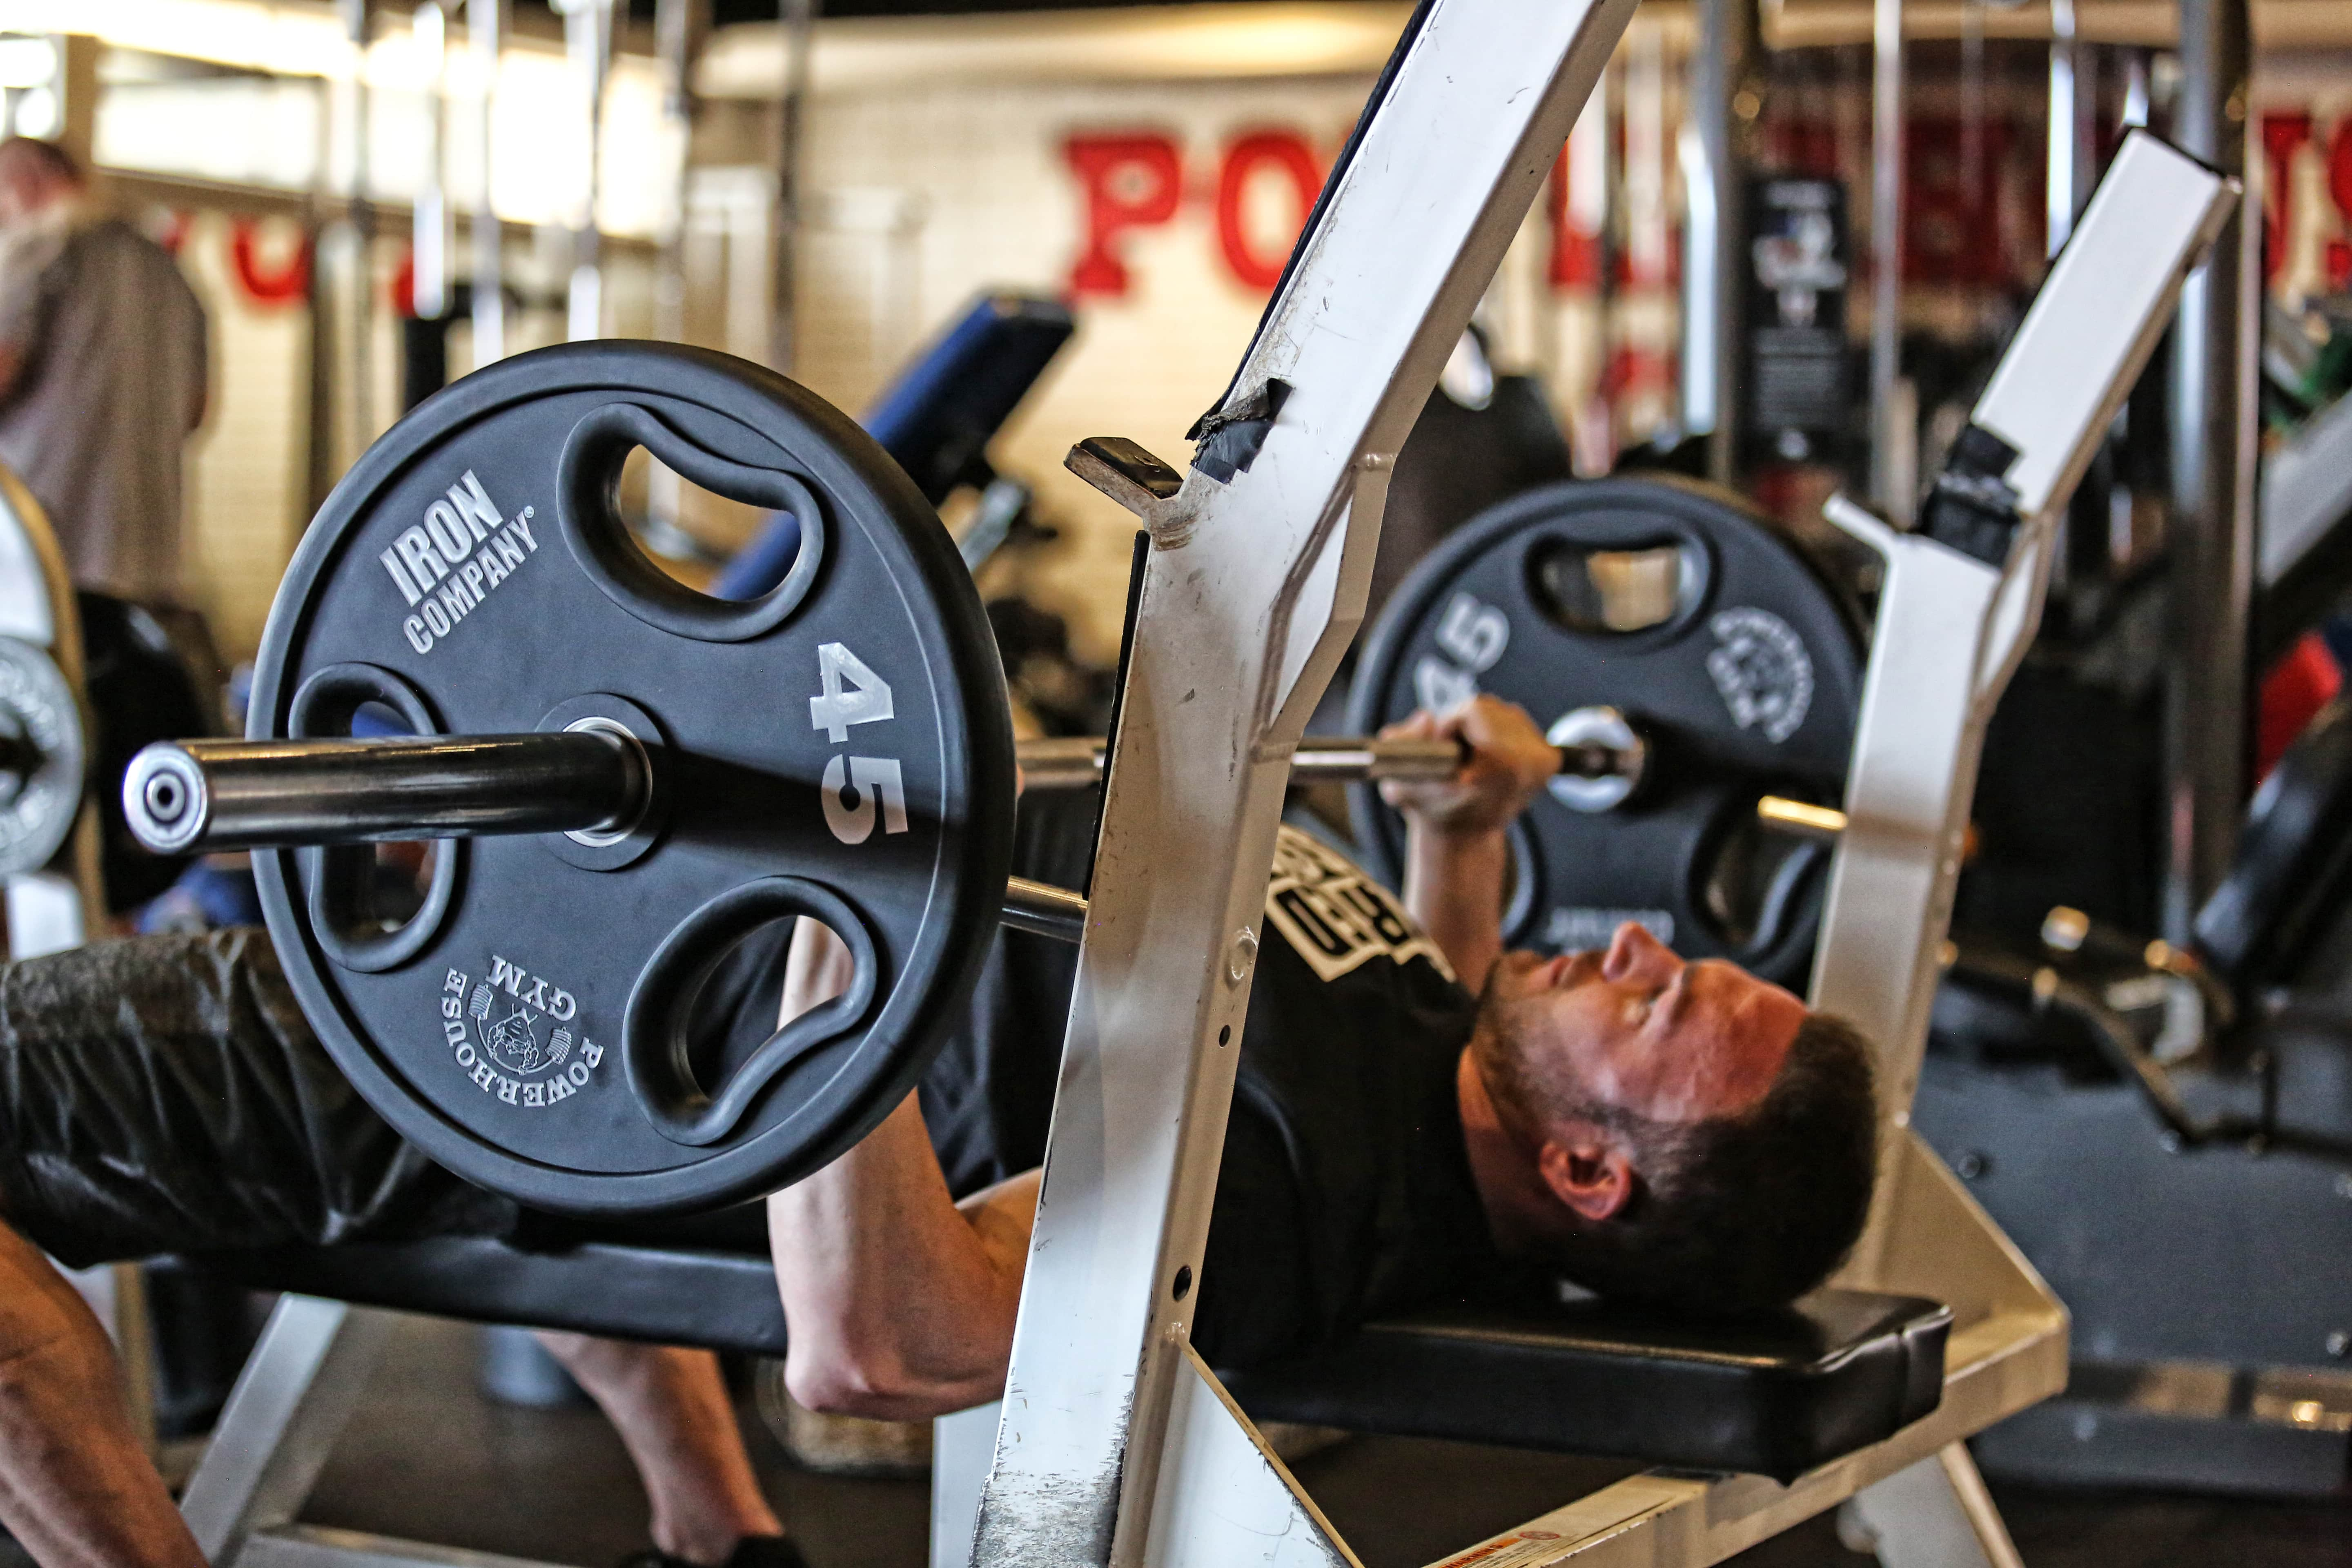 How to start weight lifting article by IRON COMPANY